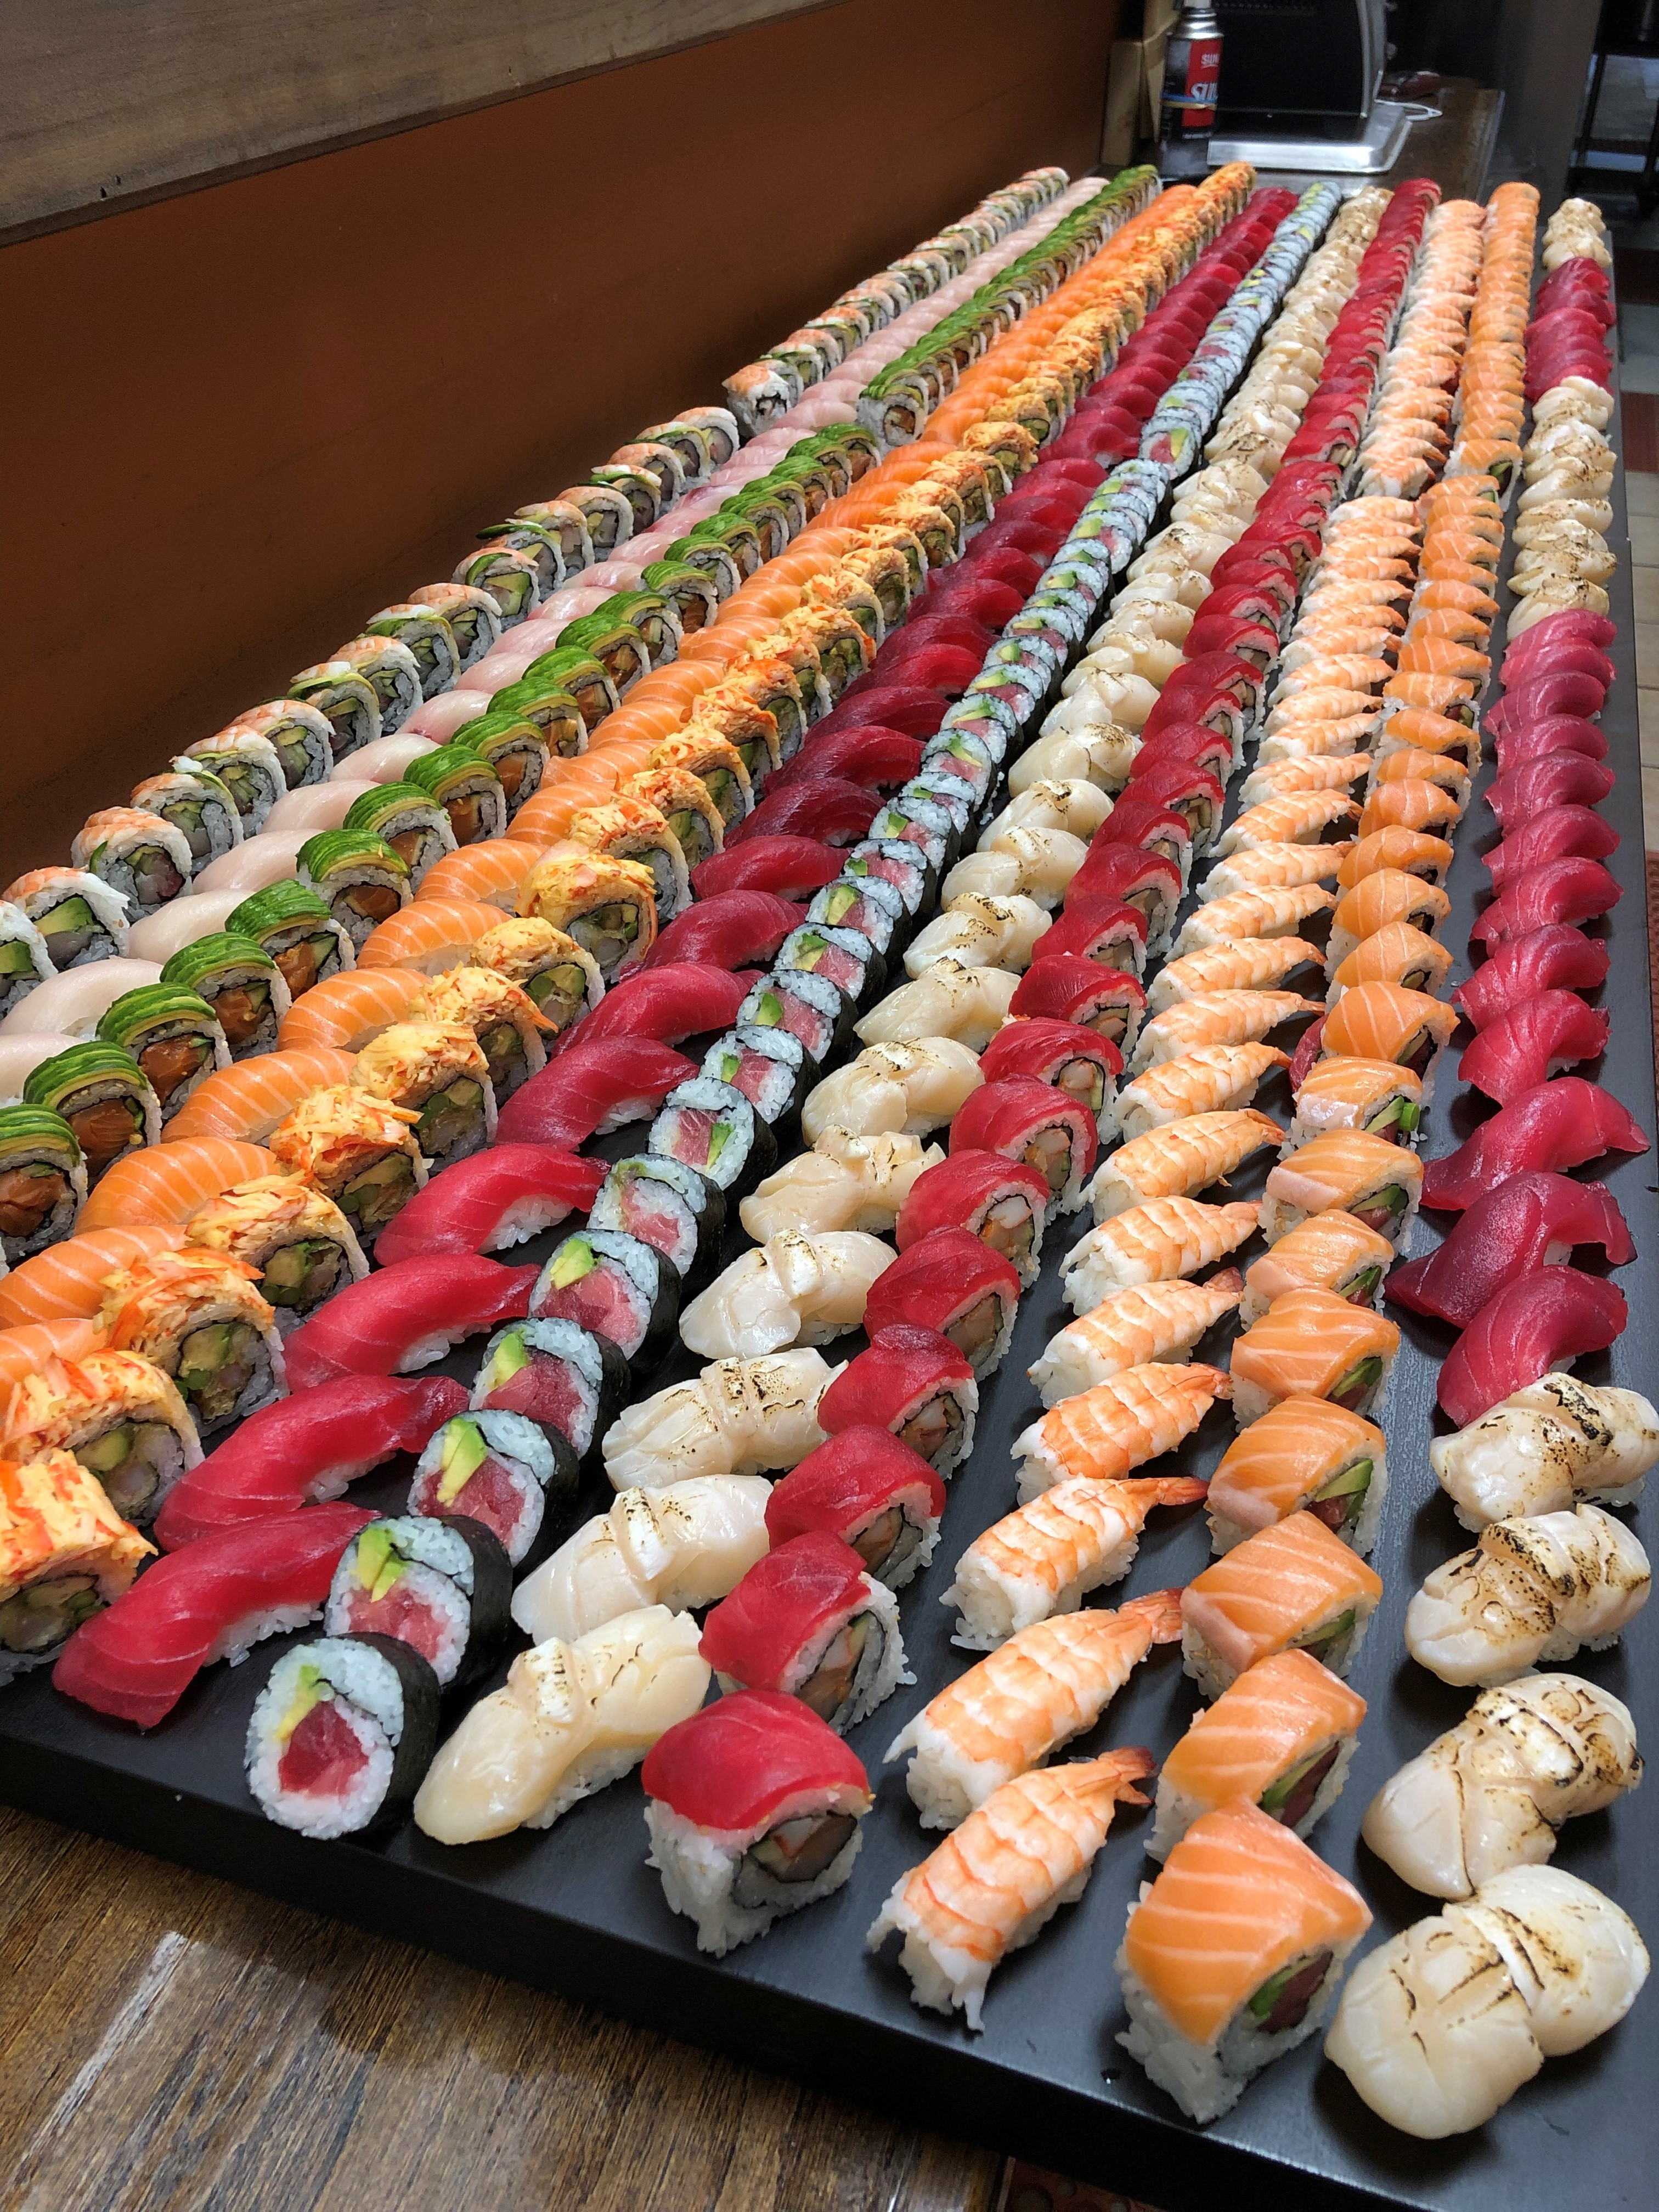 Owned by sushi chef Alvin Dayrit, Sensu Sushi Restaurant and Bar opens this winter at Town Center at Trilith near the community's movie studios in Fayetteville.